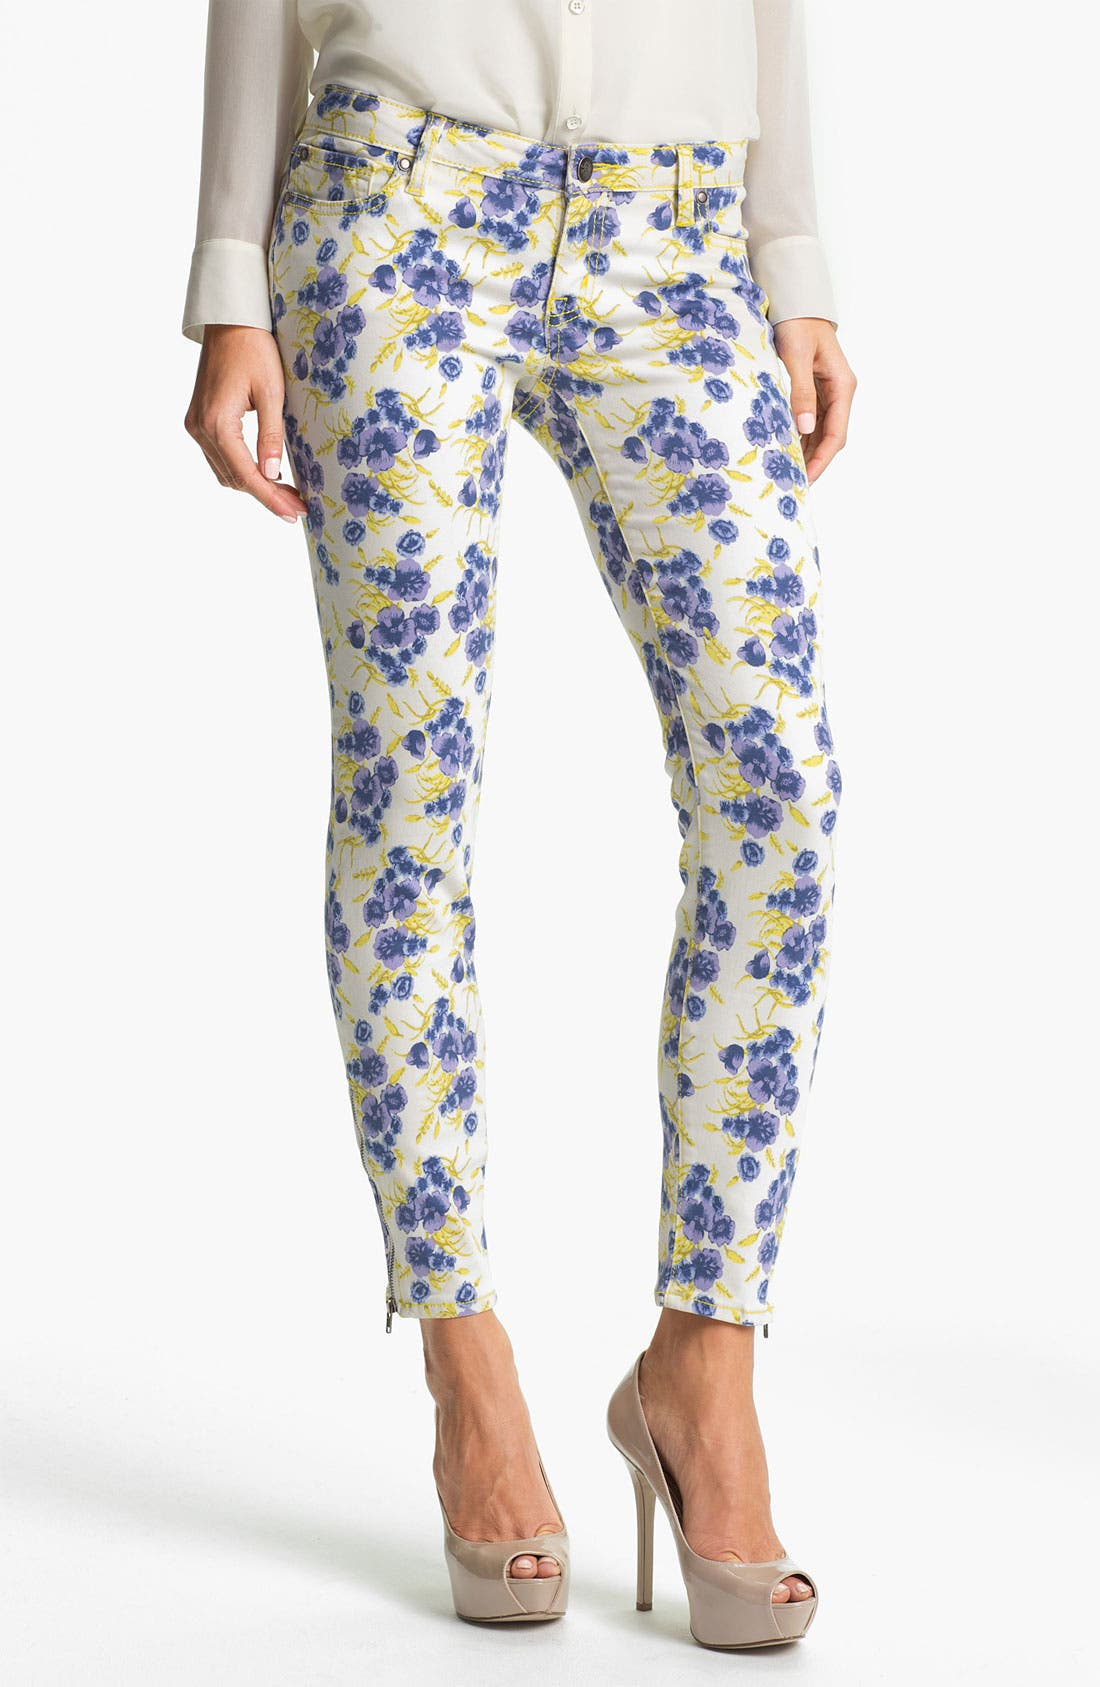 Alternate Image 1 Selected - Jessica Simpson 'Kiss Me' Print Zip Ankle Skinny Jeans (Online Exclusive)